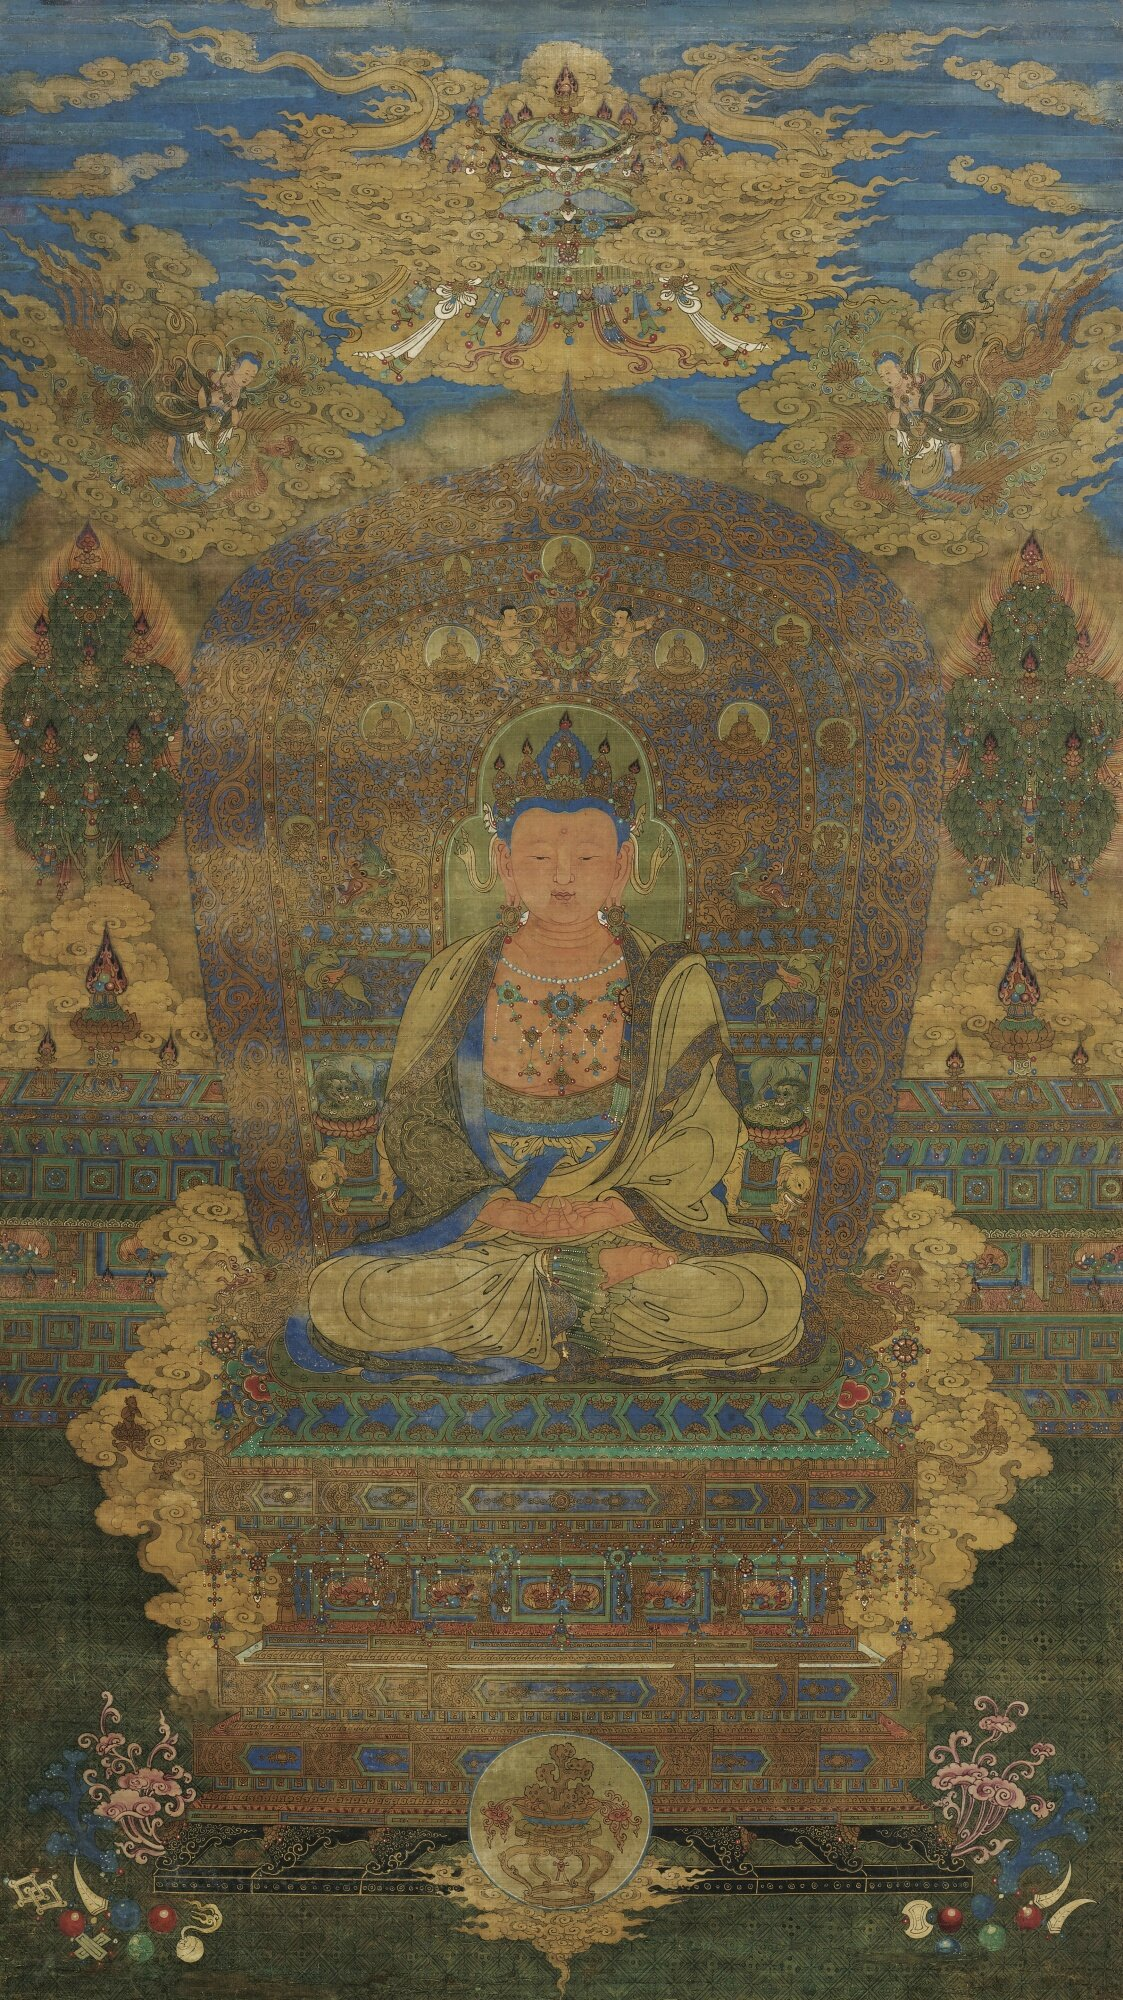 A Very Rare Painting Of A Buddha China Ming Dynasty